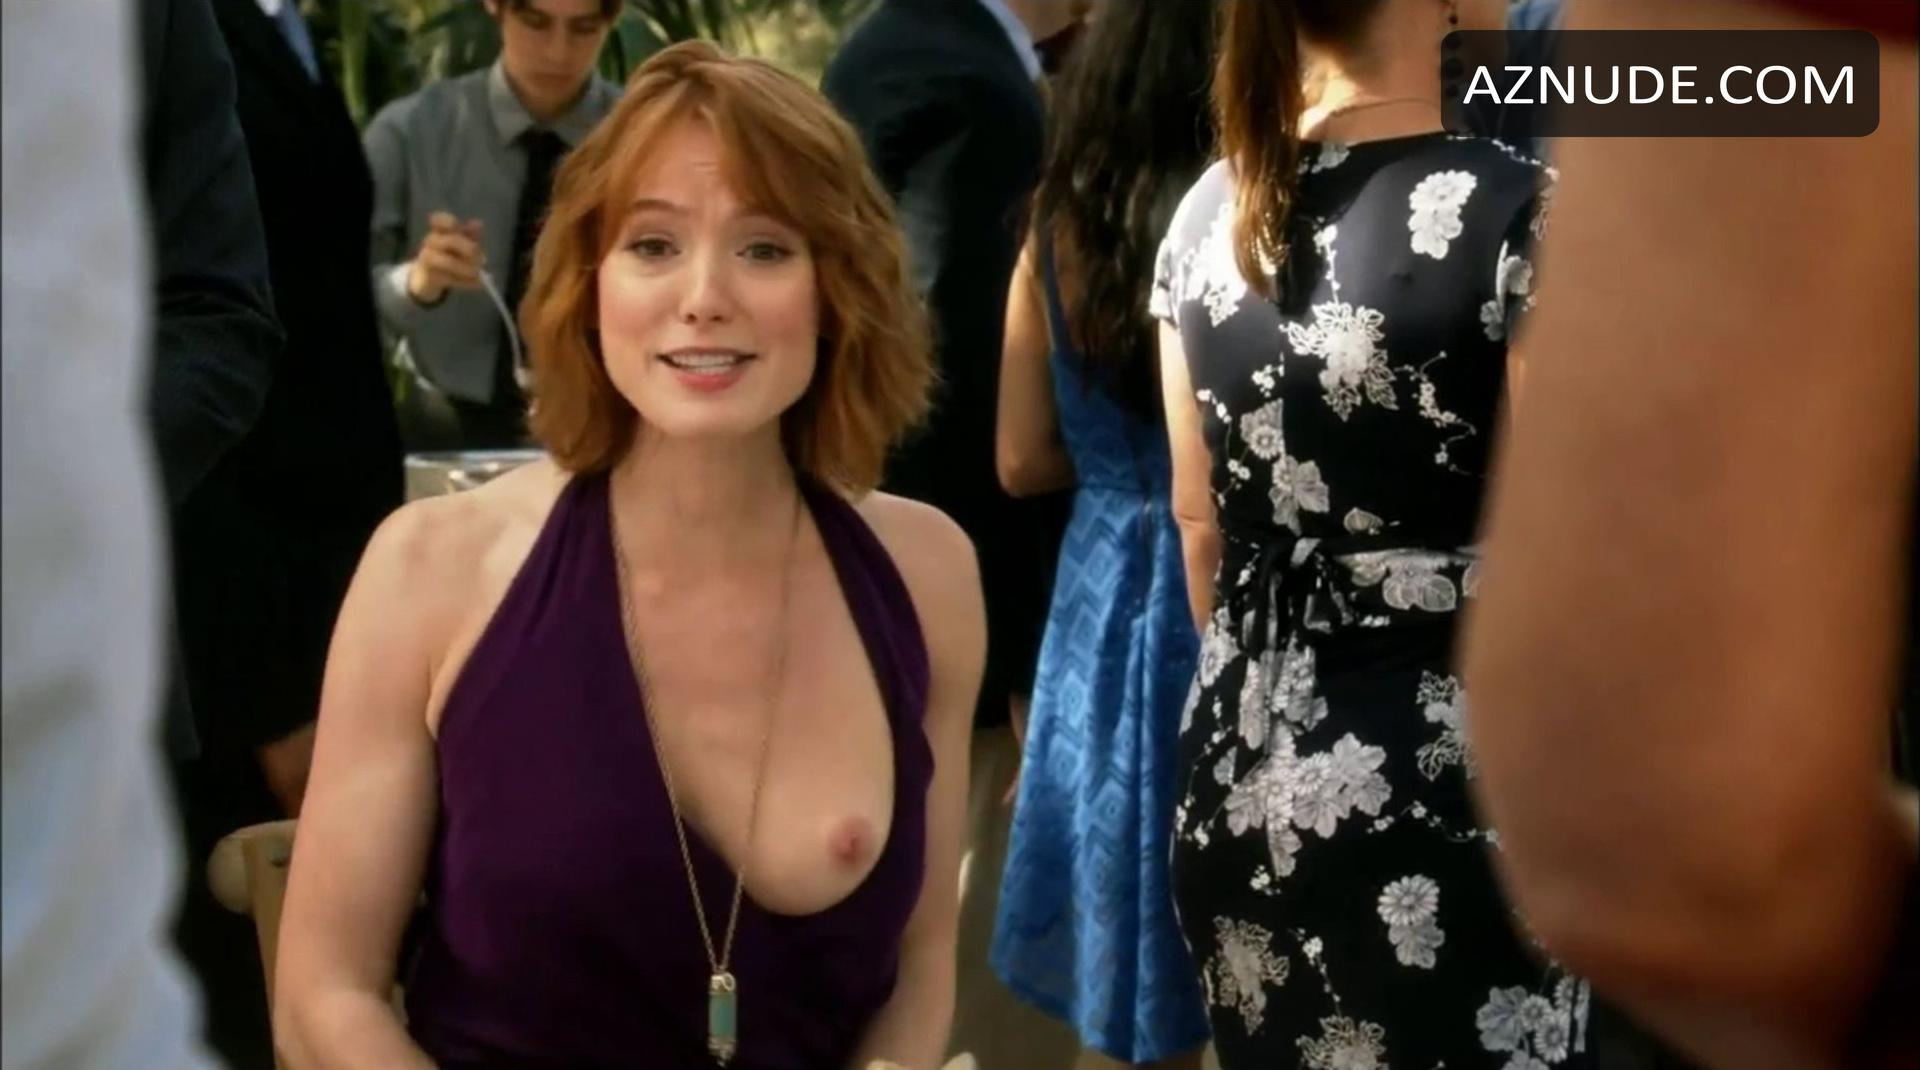 Alicia witt joint body 3